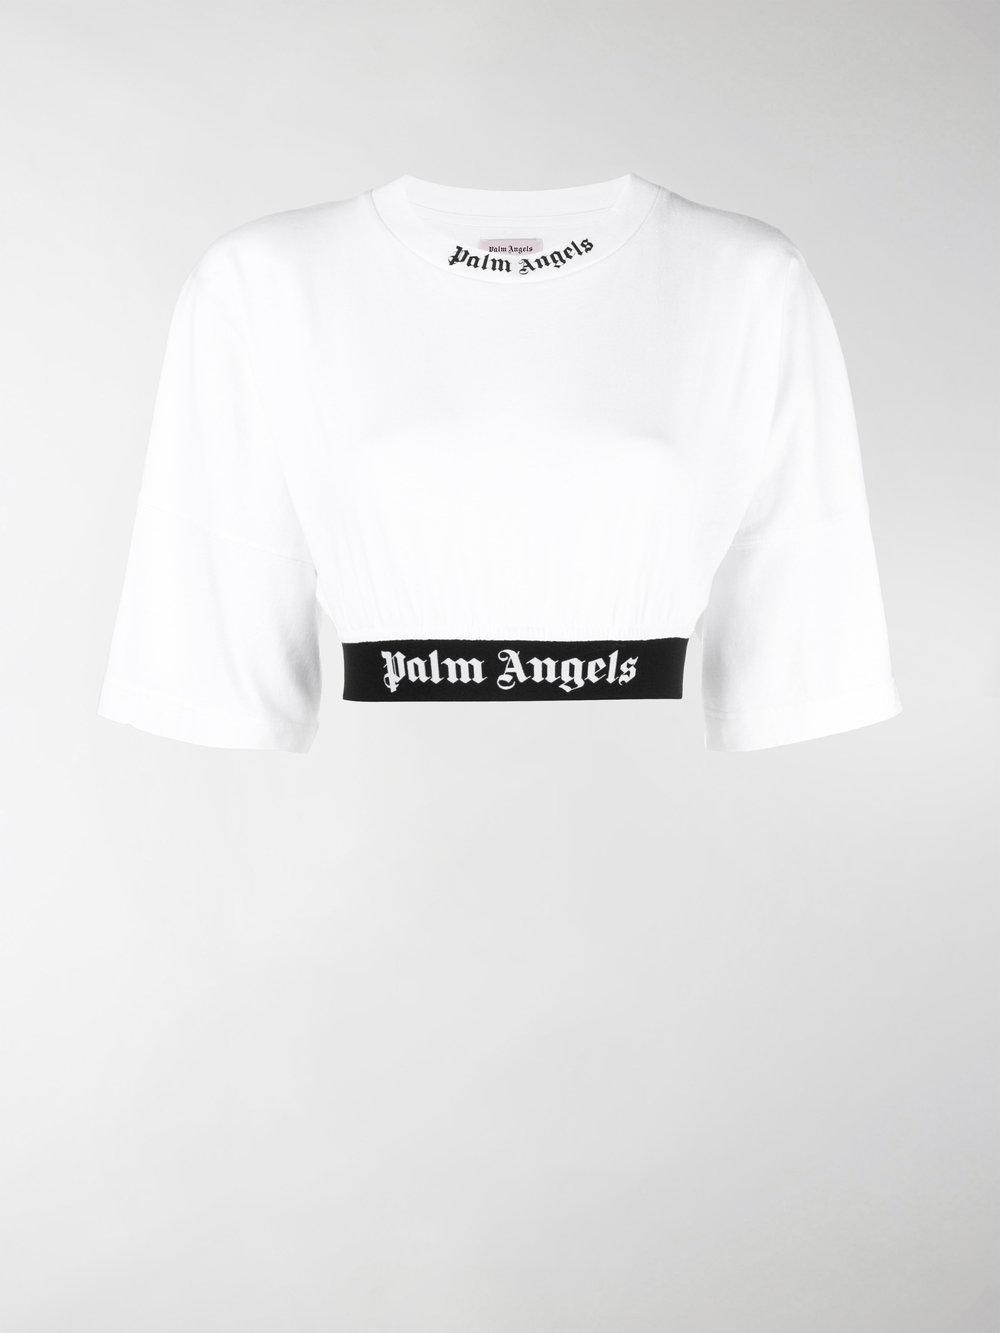 Mid Sleeve Crop In Angels Lyst Palm Top White hxrsCtQdB